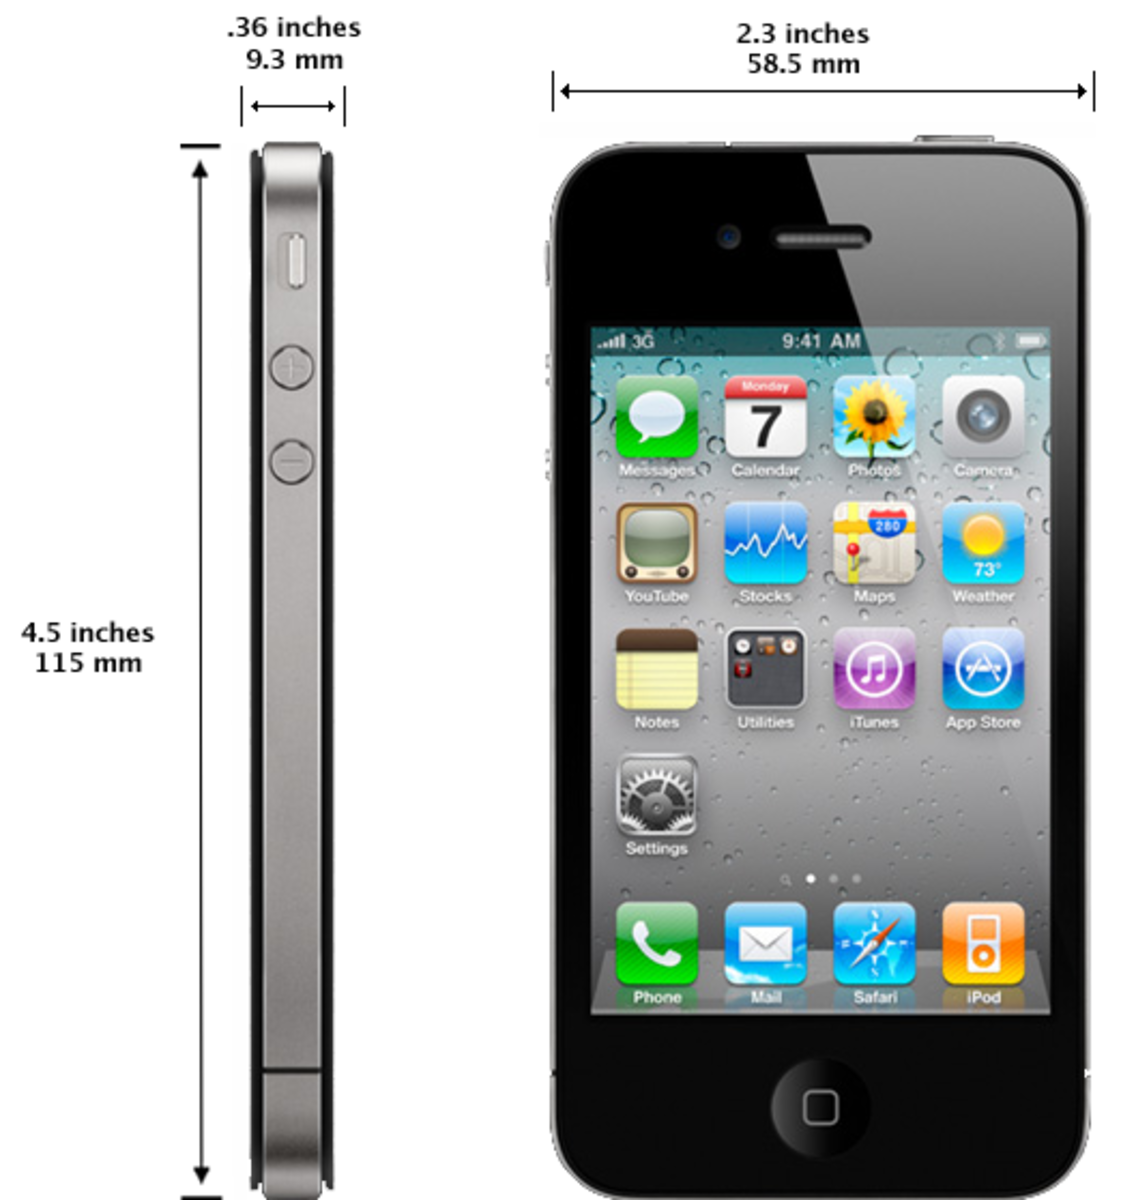 The iPhone 4 offers a flat front and back, two individual volume buttons and a stainless steel antenna that wraps around the device.